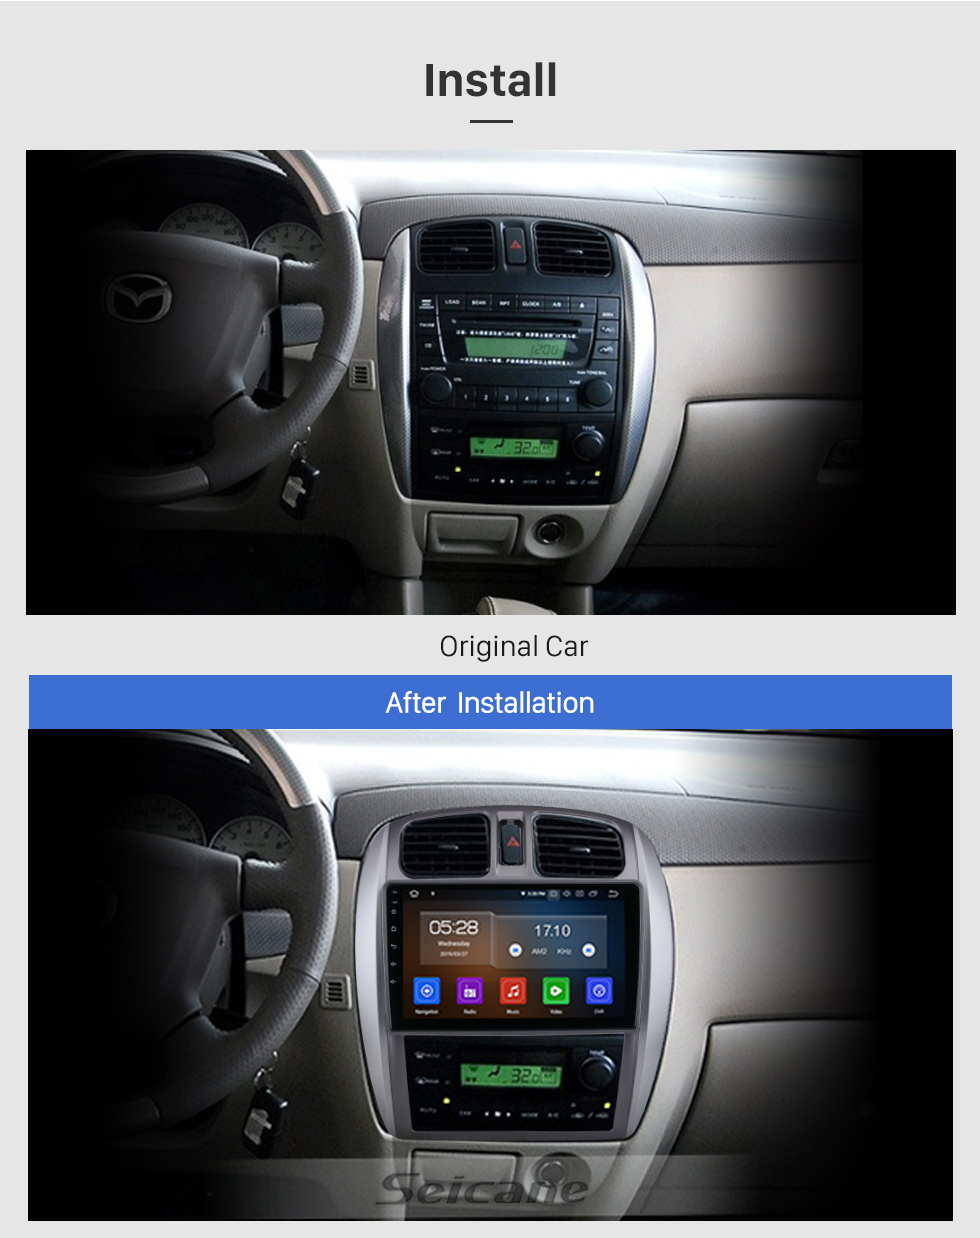 Seicane 9 inch Android 10.0 For 2002-2008 Mazda 323/09/FAW Haima Preema/Ford Laser Radio GPS Navigation System with HD Touchscreen Bluetooth Carplay support OBD2